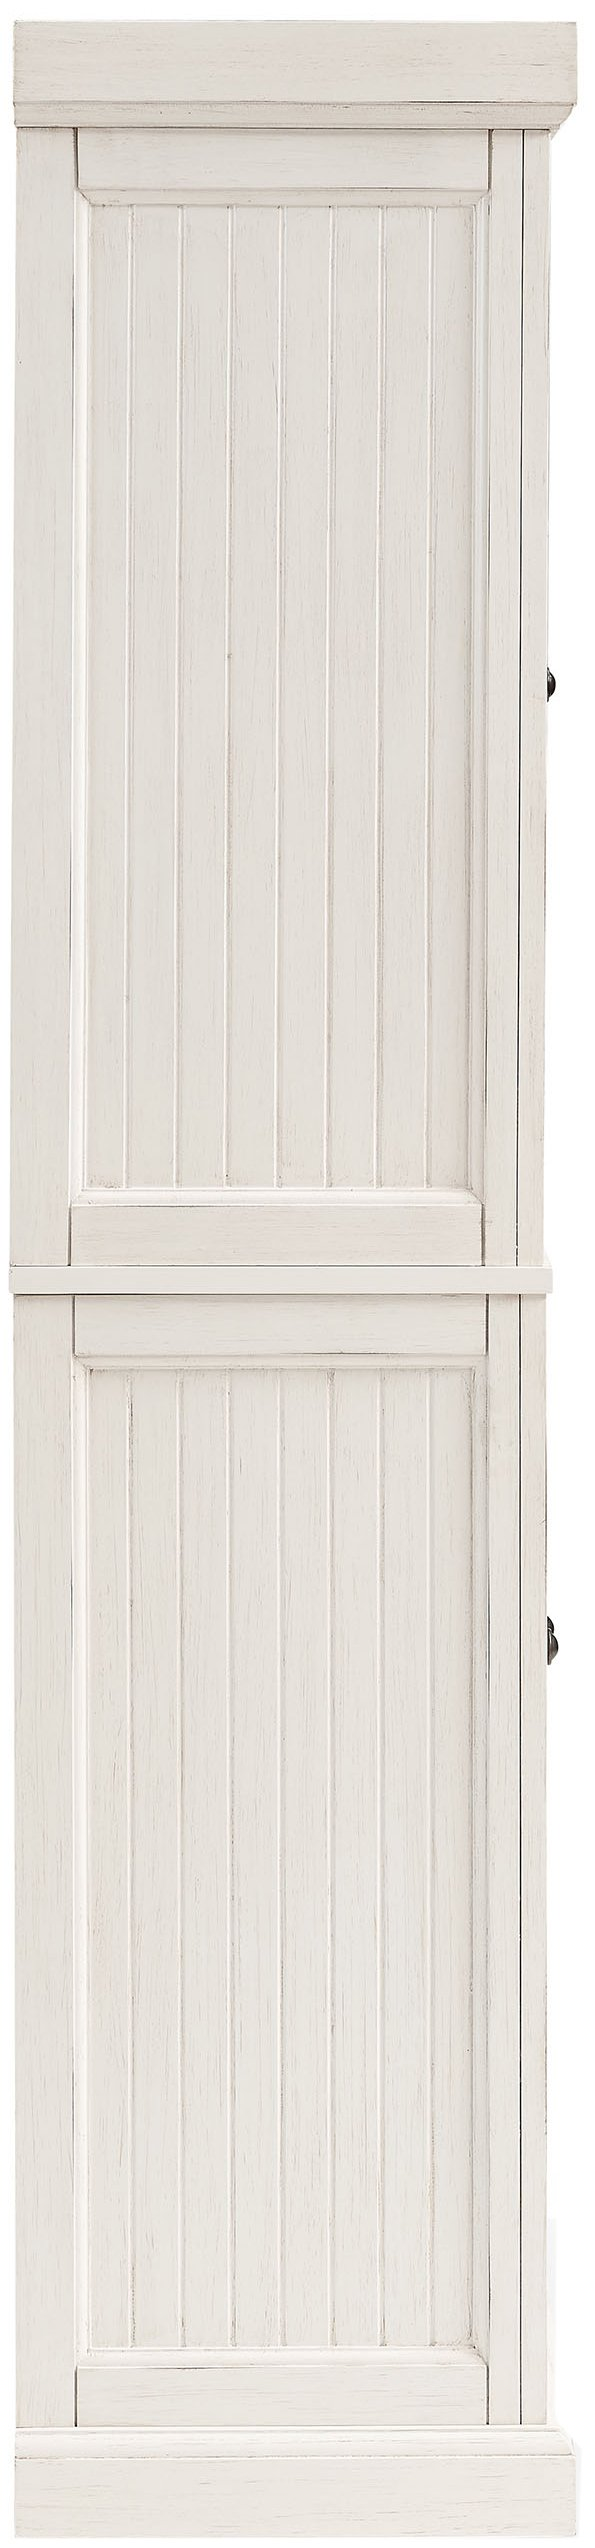 Crosley Furniture Seaside Kitchen Pantry Cabinet - Distressed White by Crosley Furniture (Image #4)